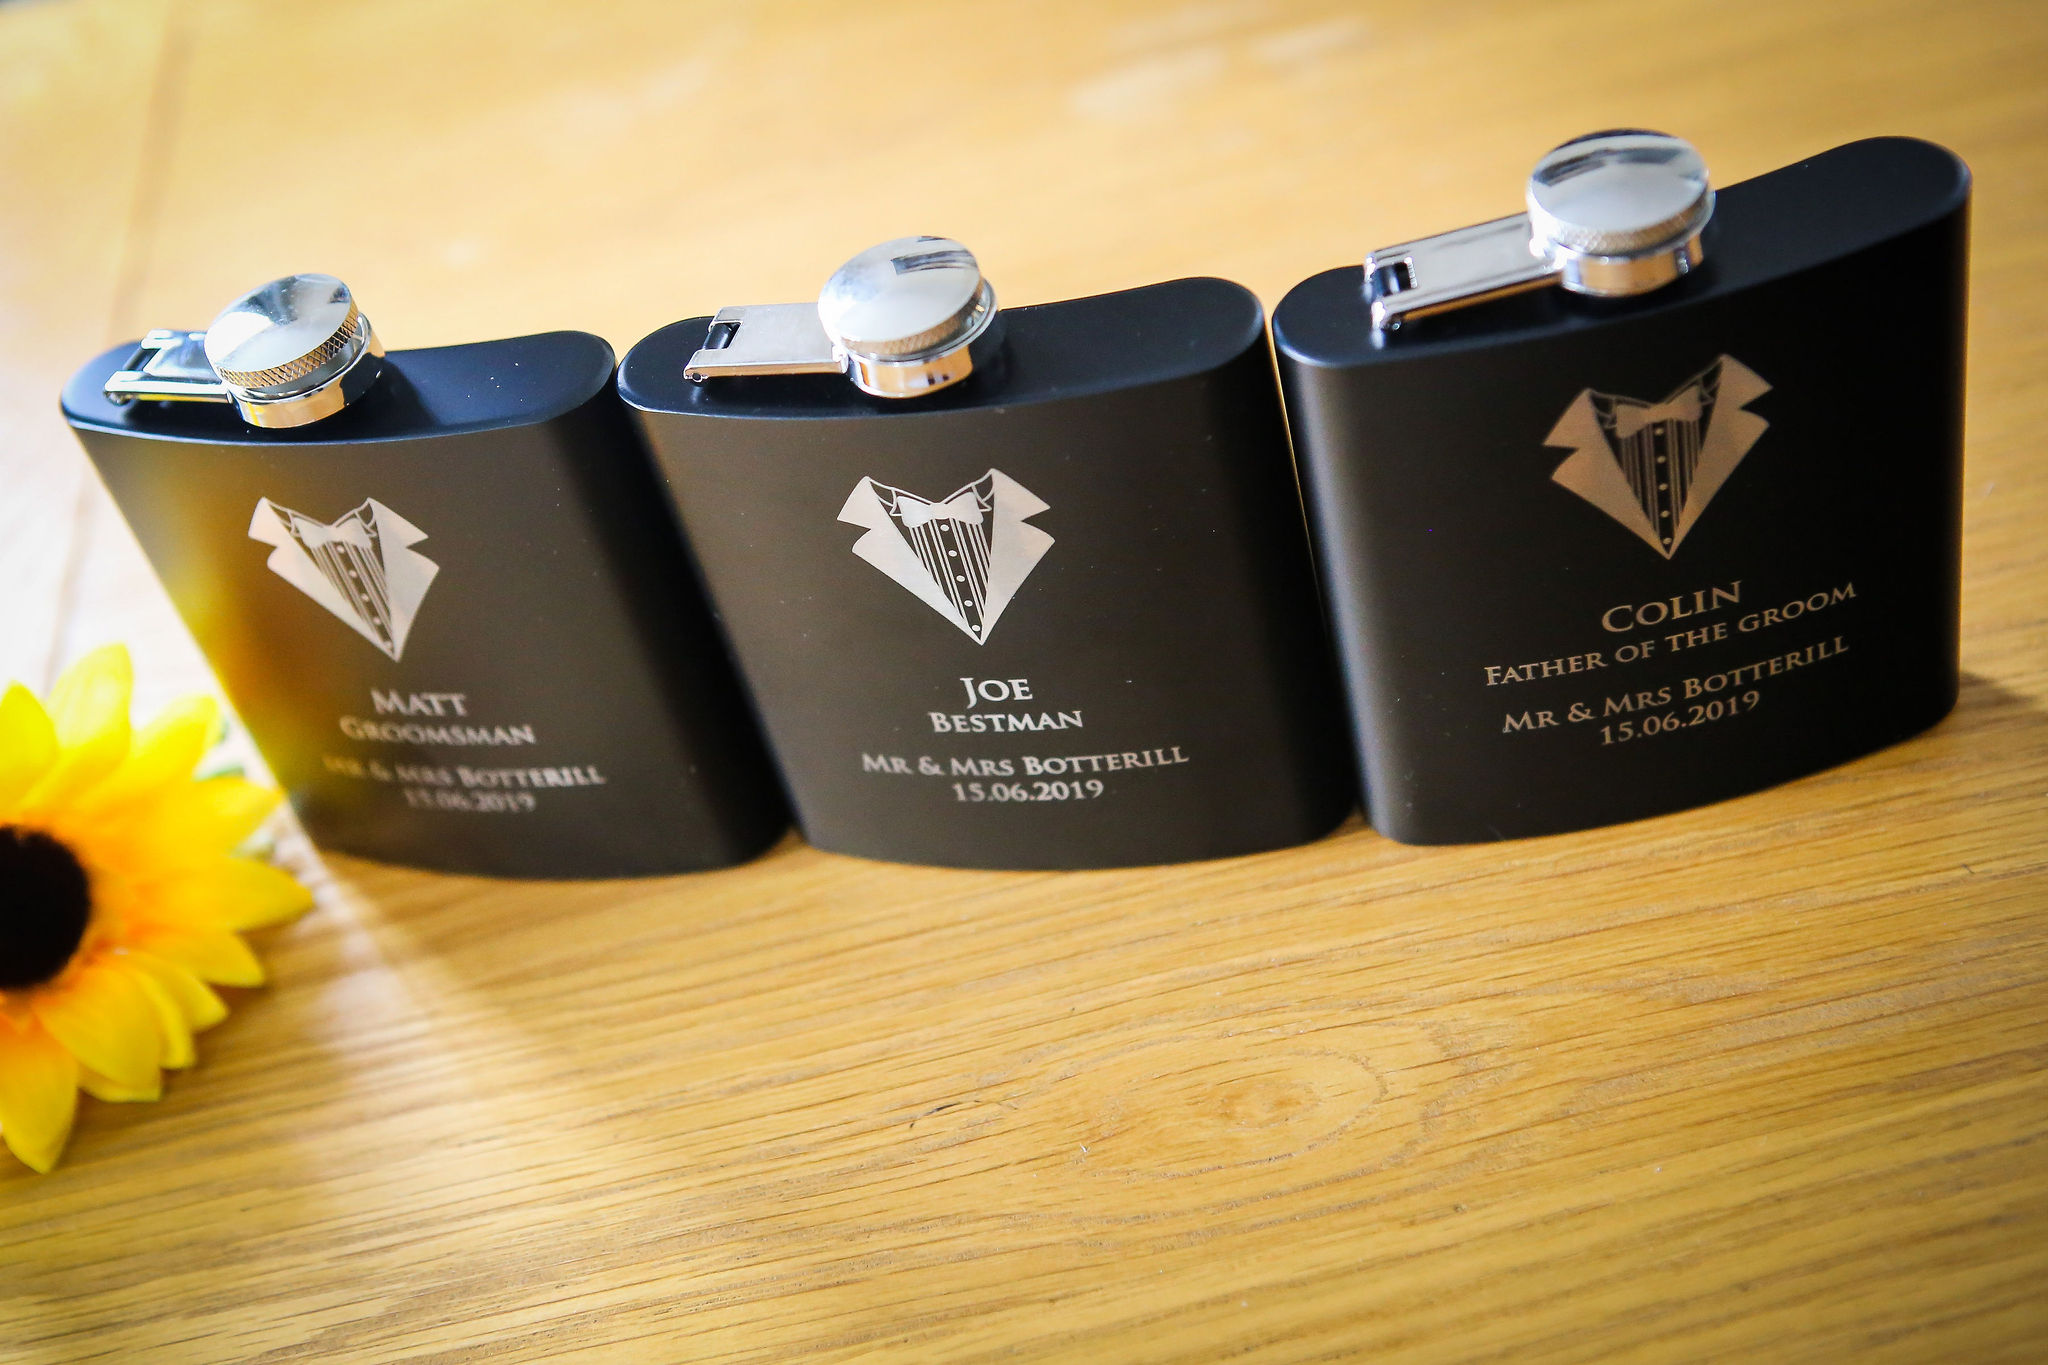 Harriet&Rhys Wedding - alternative groomsman gifts